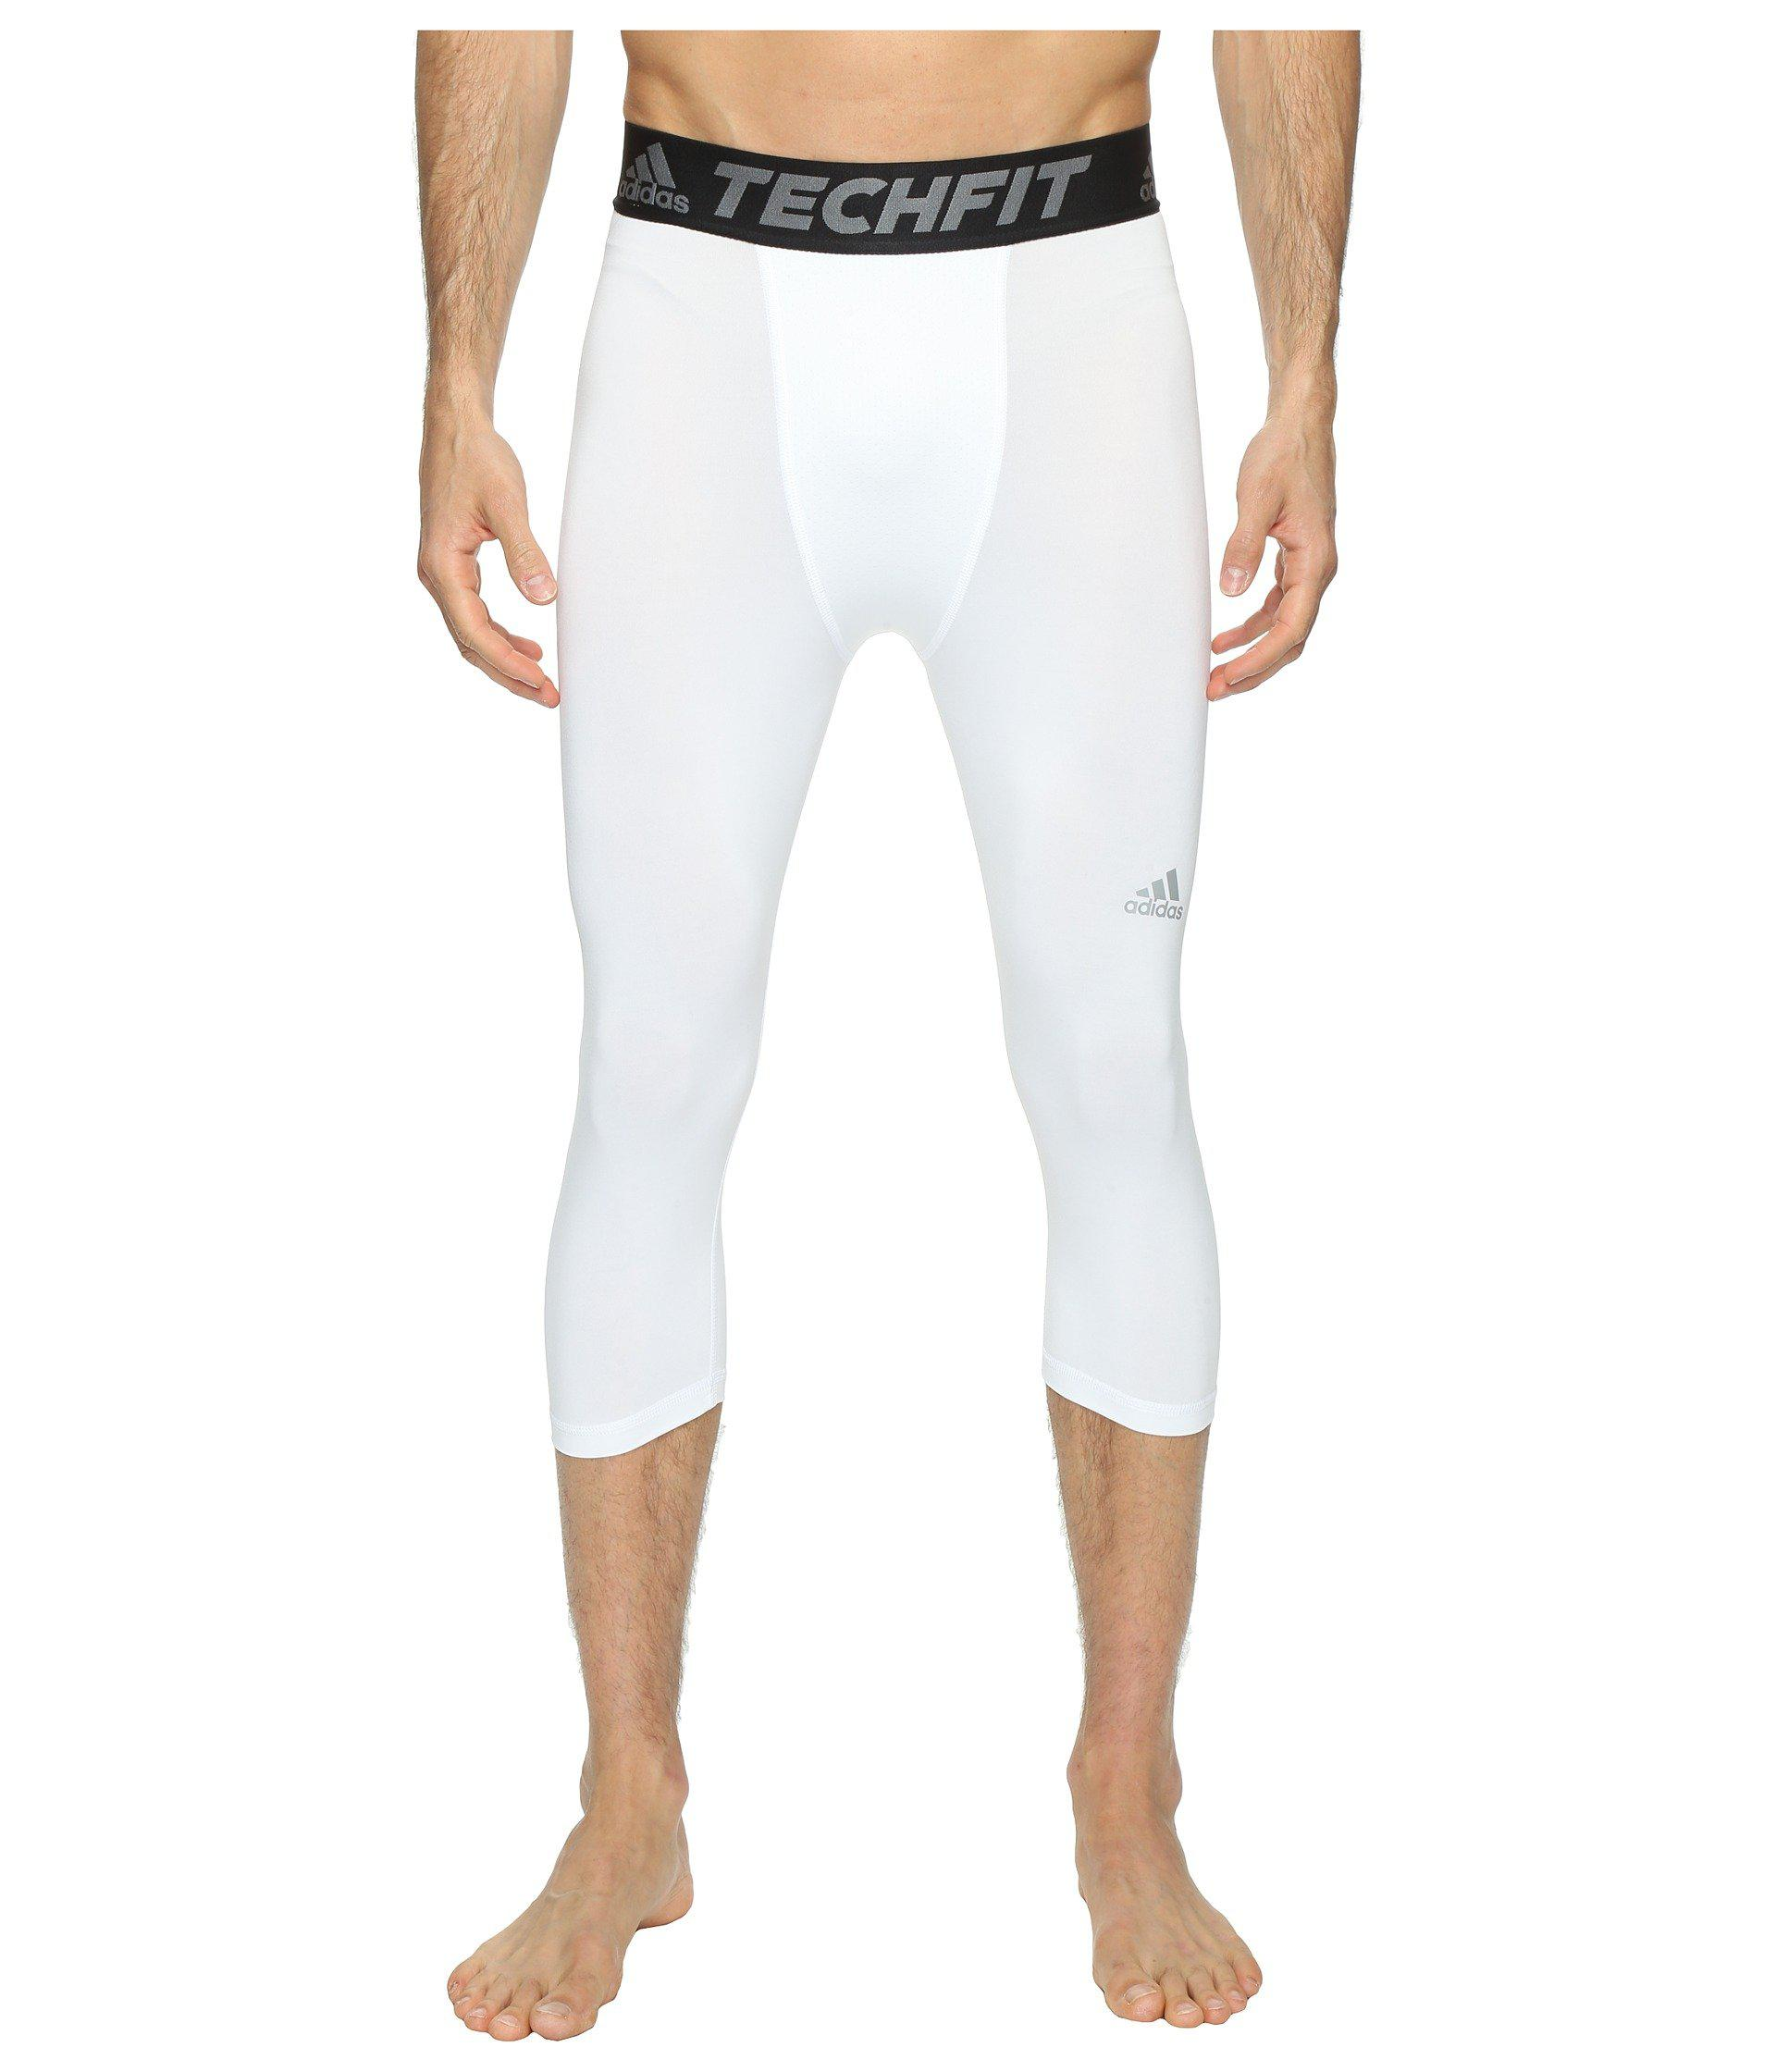 8a7f8bab91 Lyst - adidas Techfit Base 3/4 Tights in White for Men